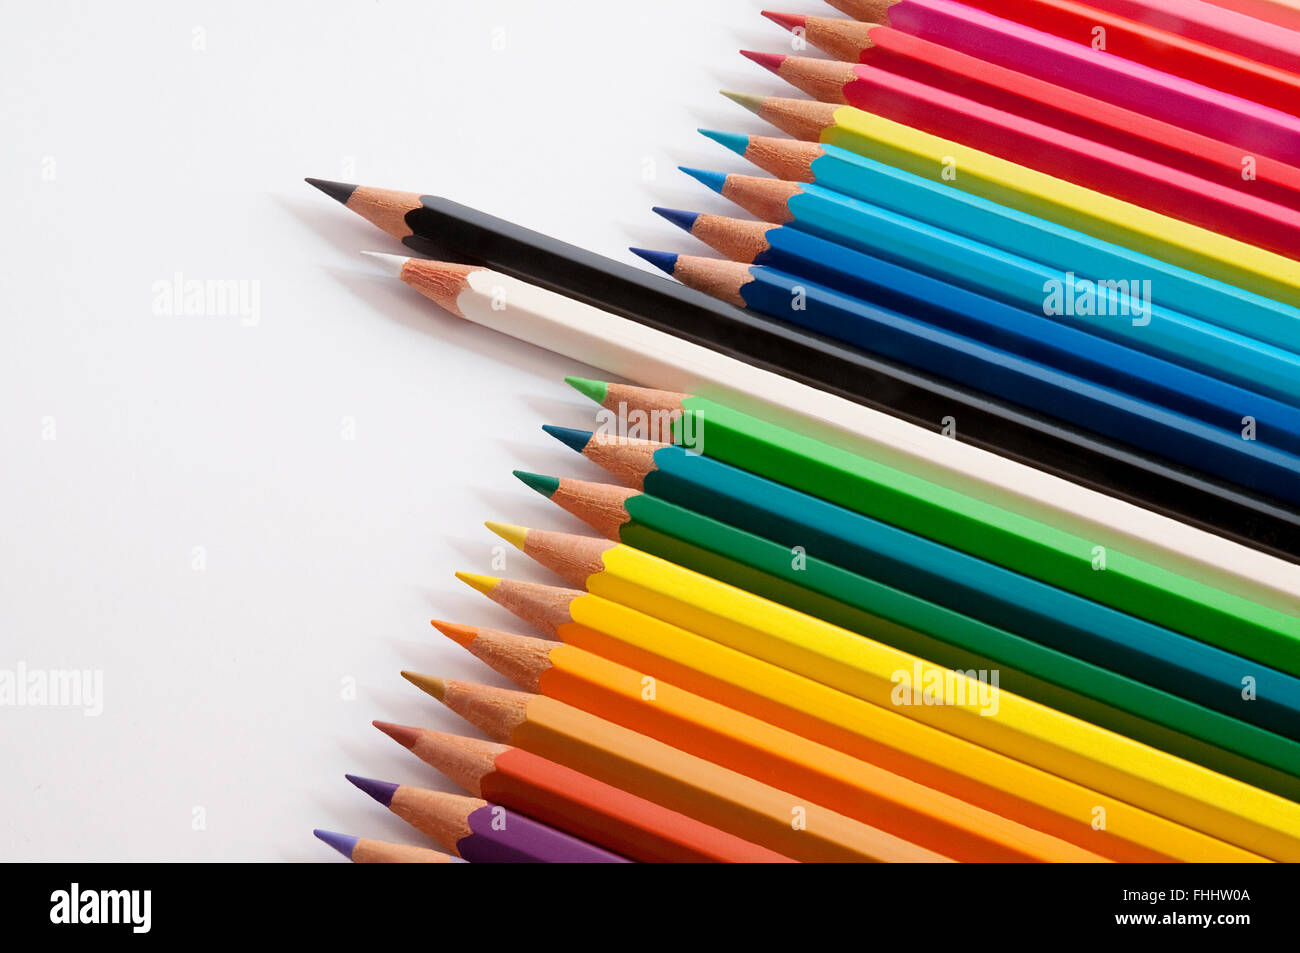 Black and white pencils sticking out from coloured pencils. - Stock Image